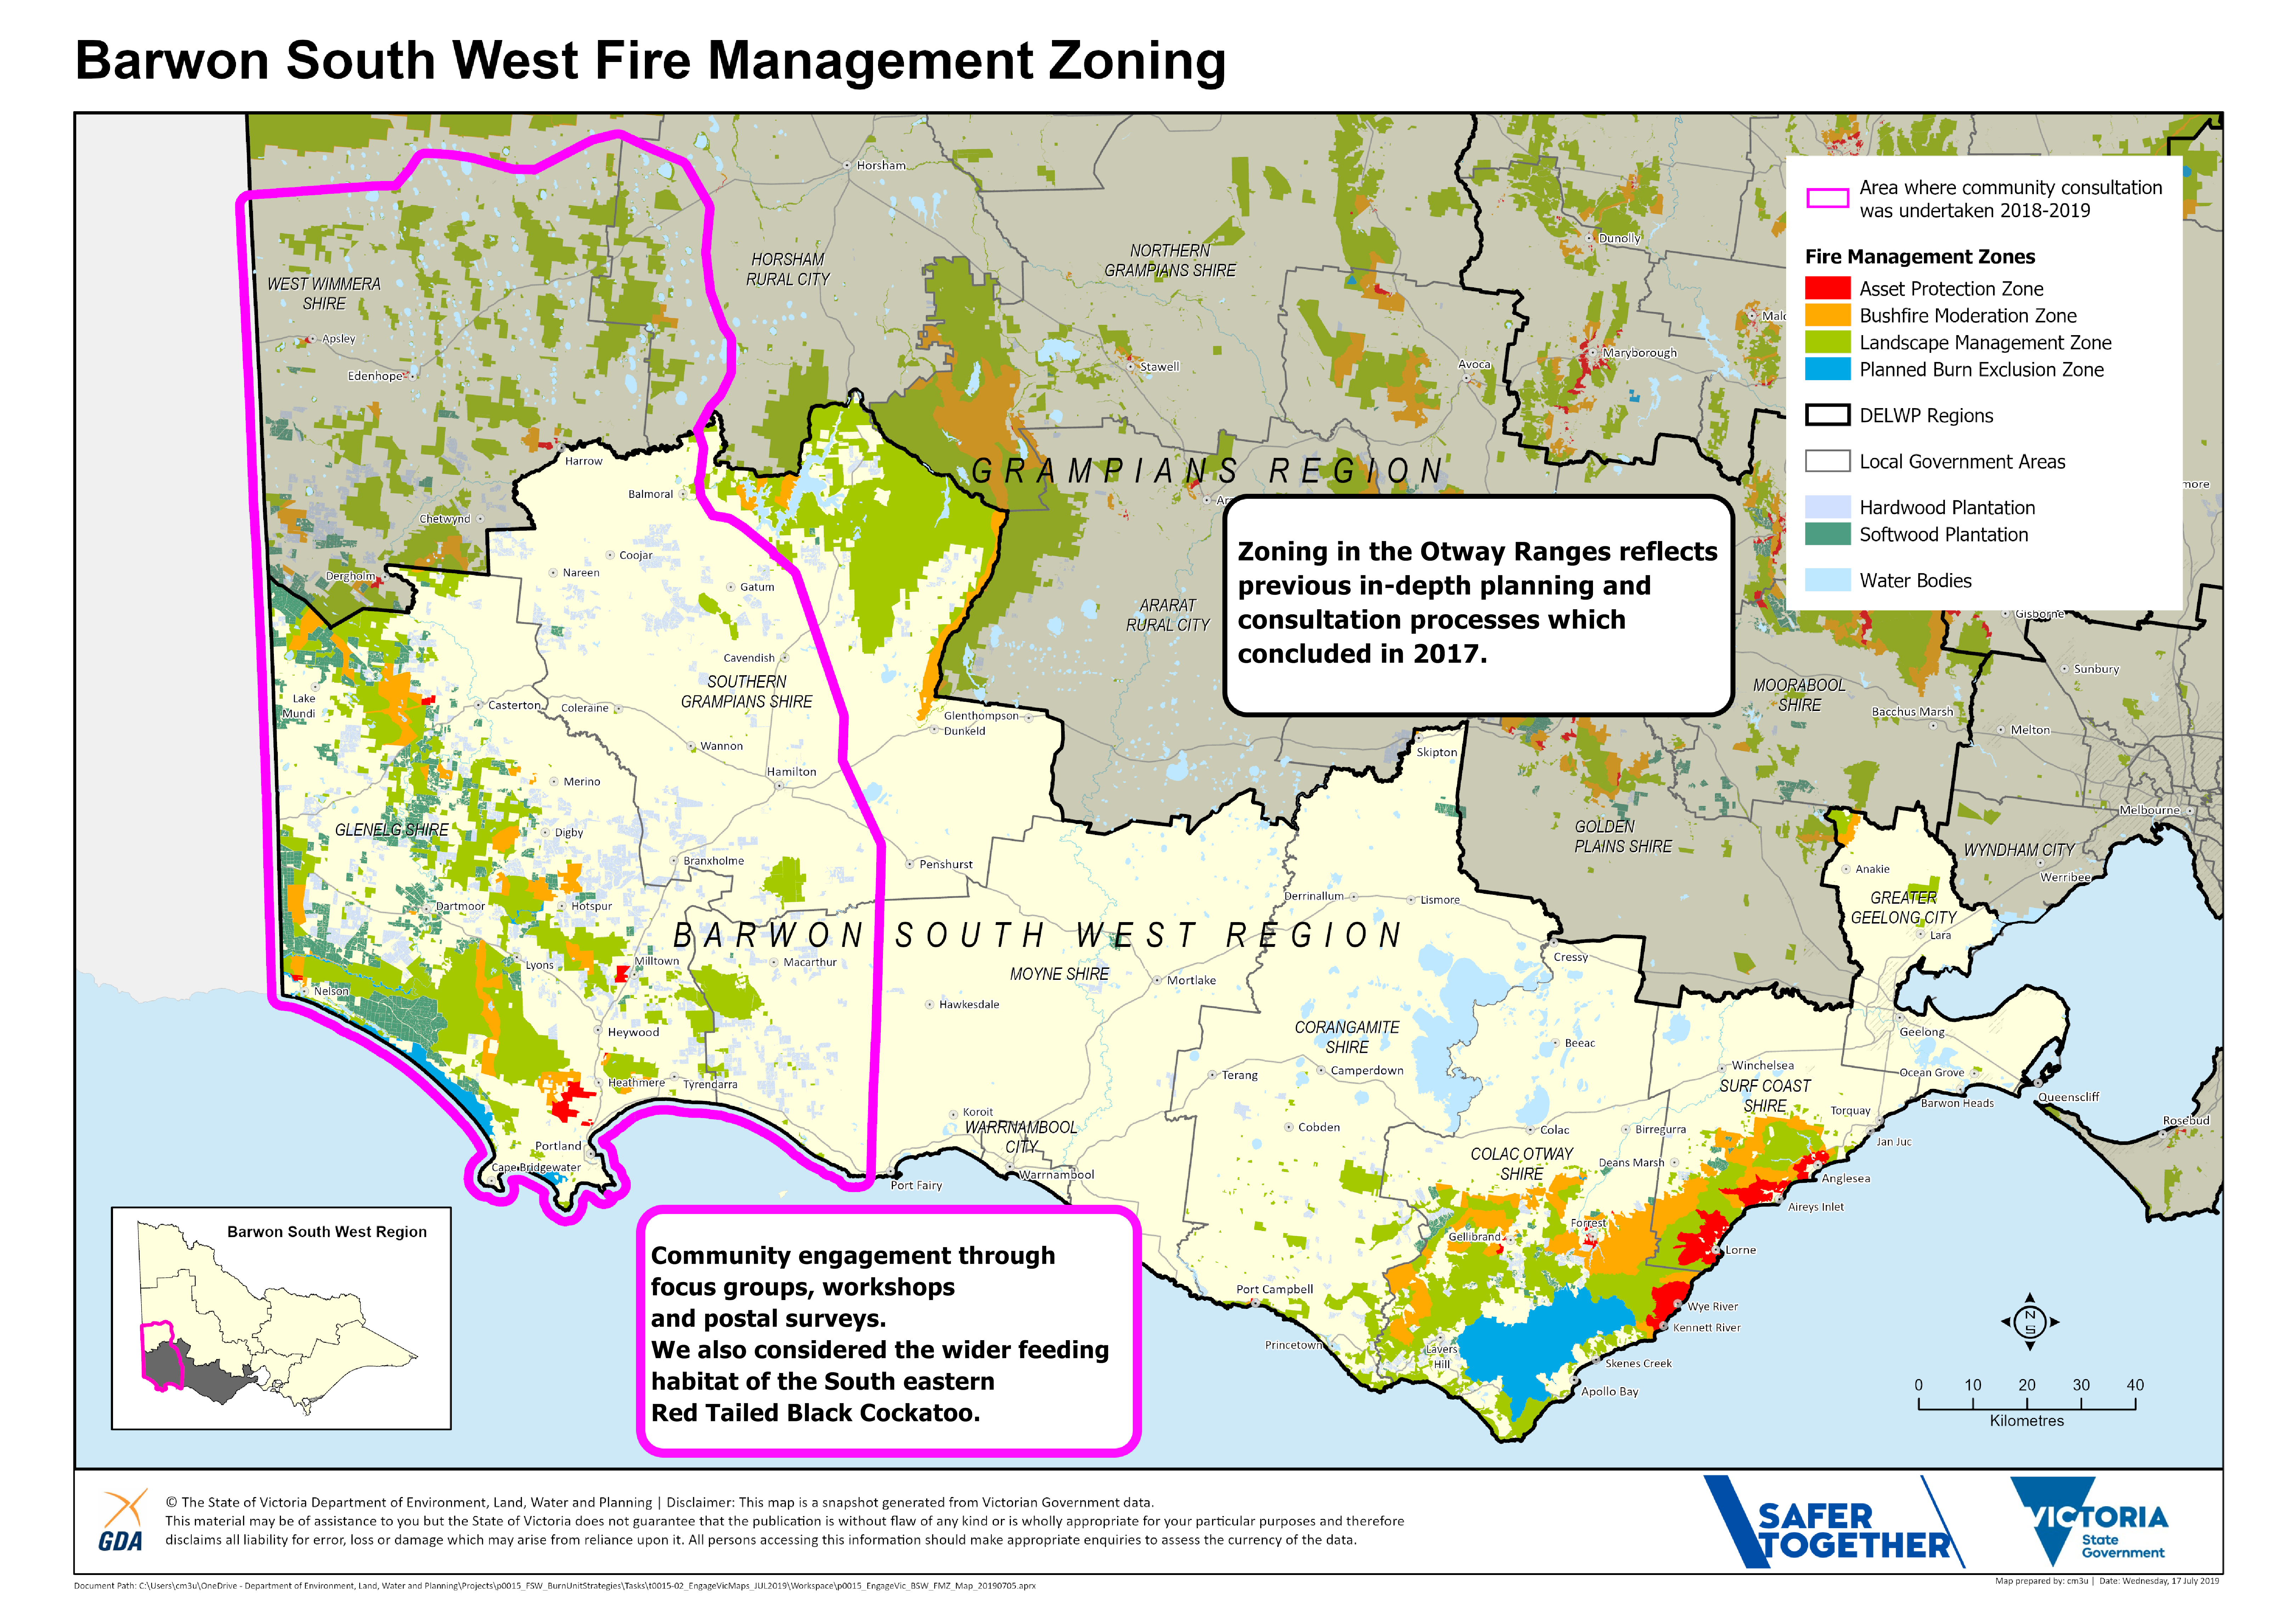 A map of the Fire Management Zones (public land) in Barwon South West region